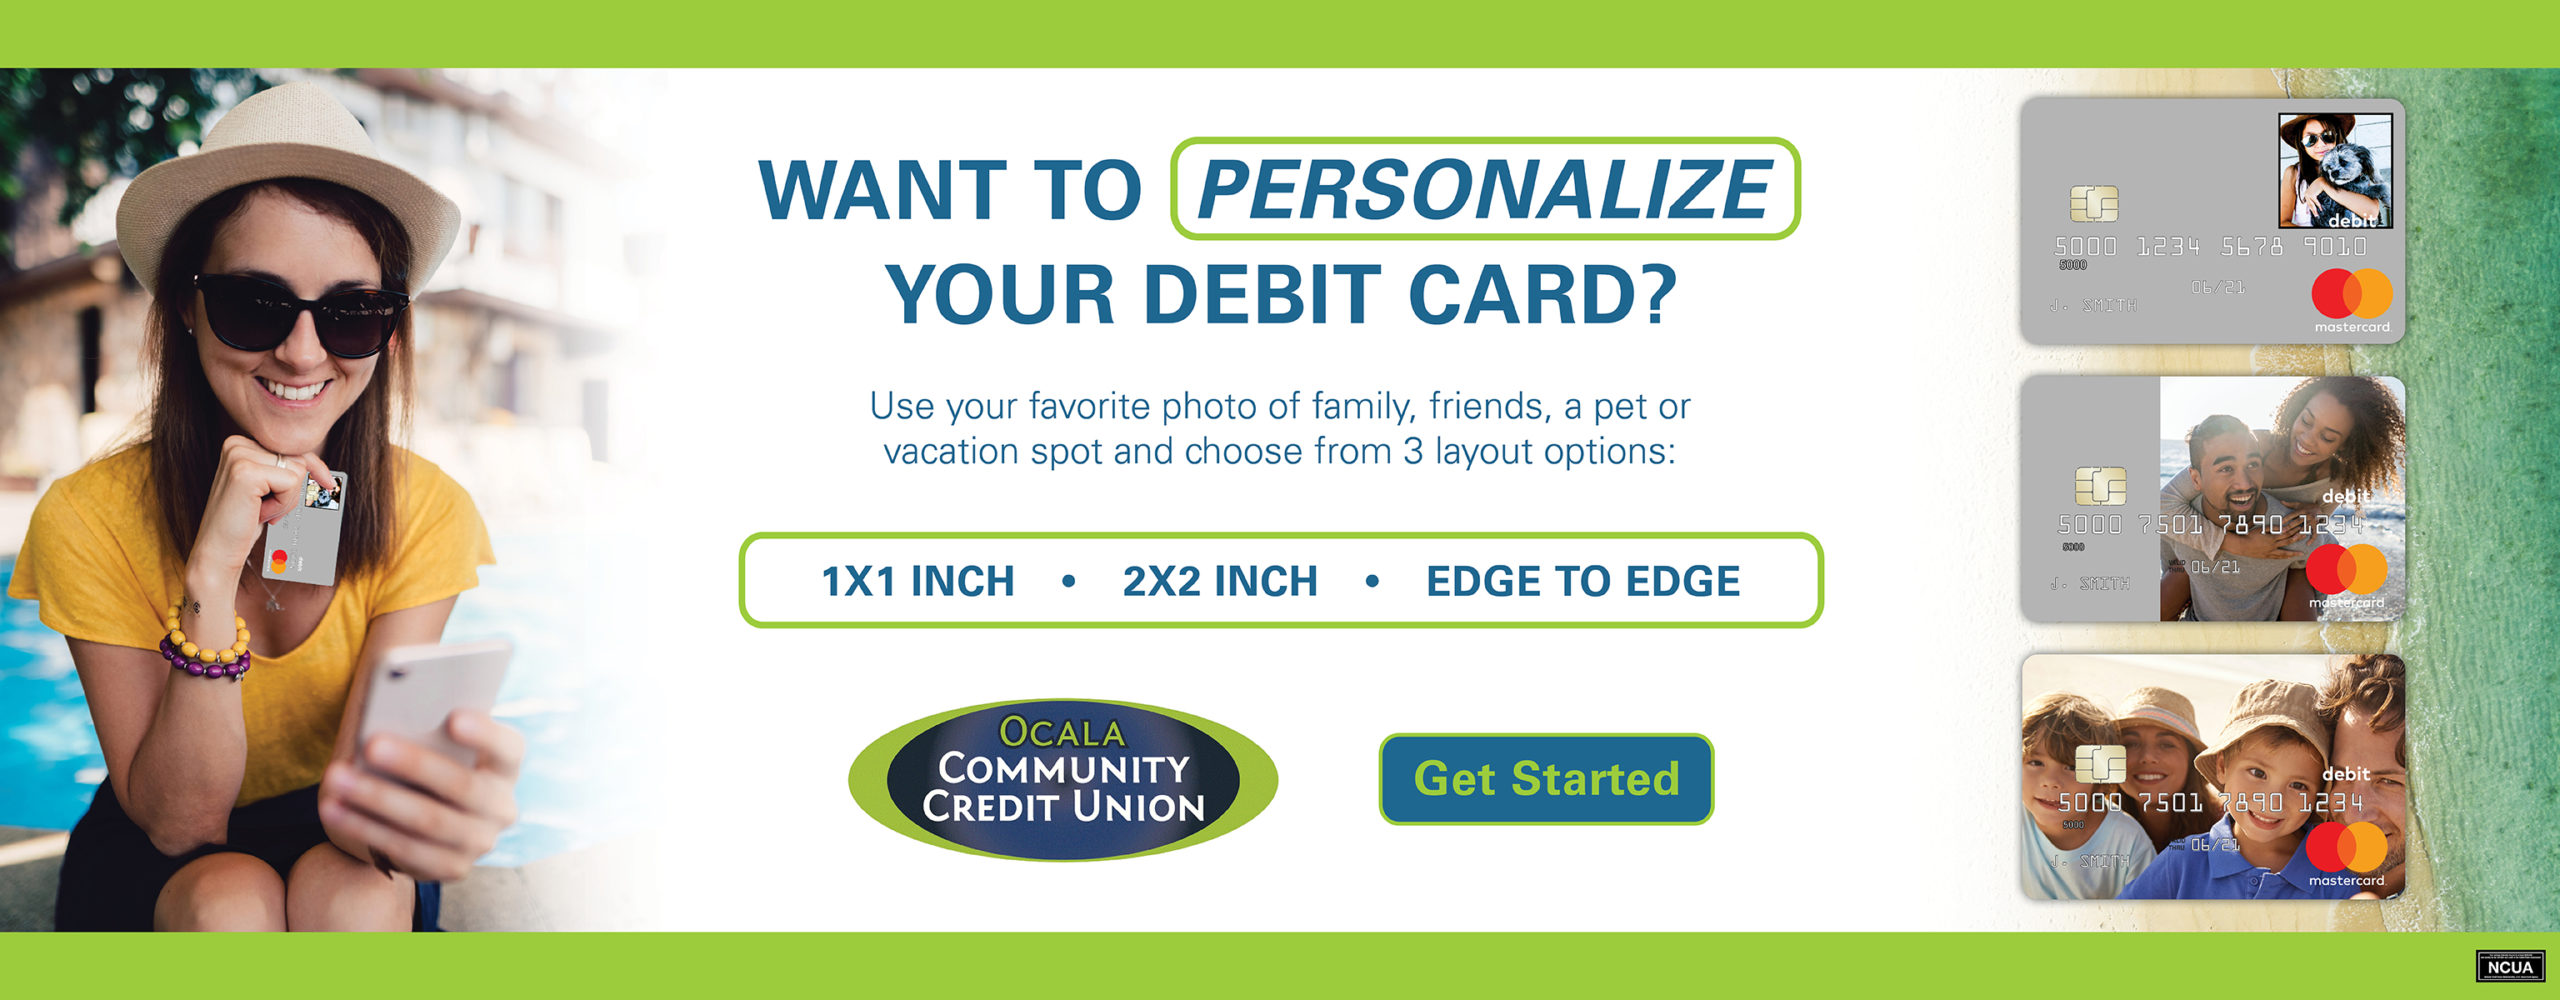 Personalize Your Debit Card